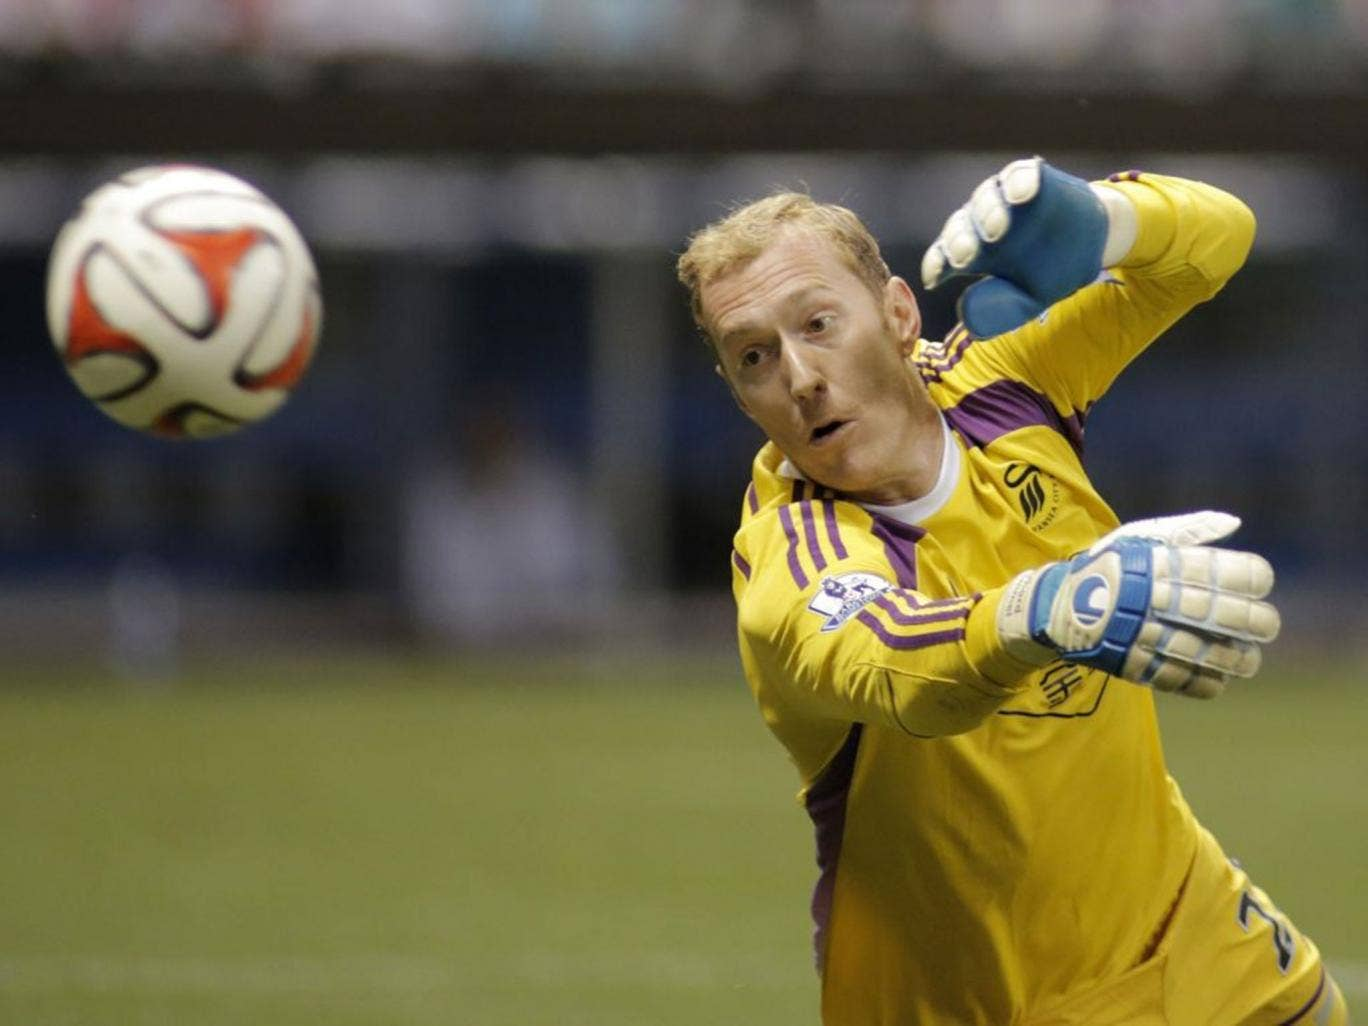 Swansea City goalie  Gerhard Tremmel  attempts to block a shot on goal from Chivas De Guadalajara during the second half of a International League soccer match at Miller Park Wednesday, July 16, 2014, in Milwaukee.